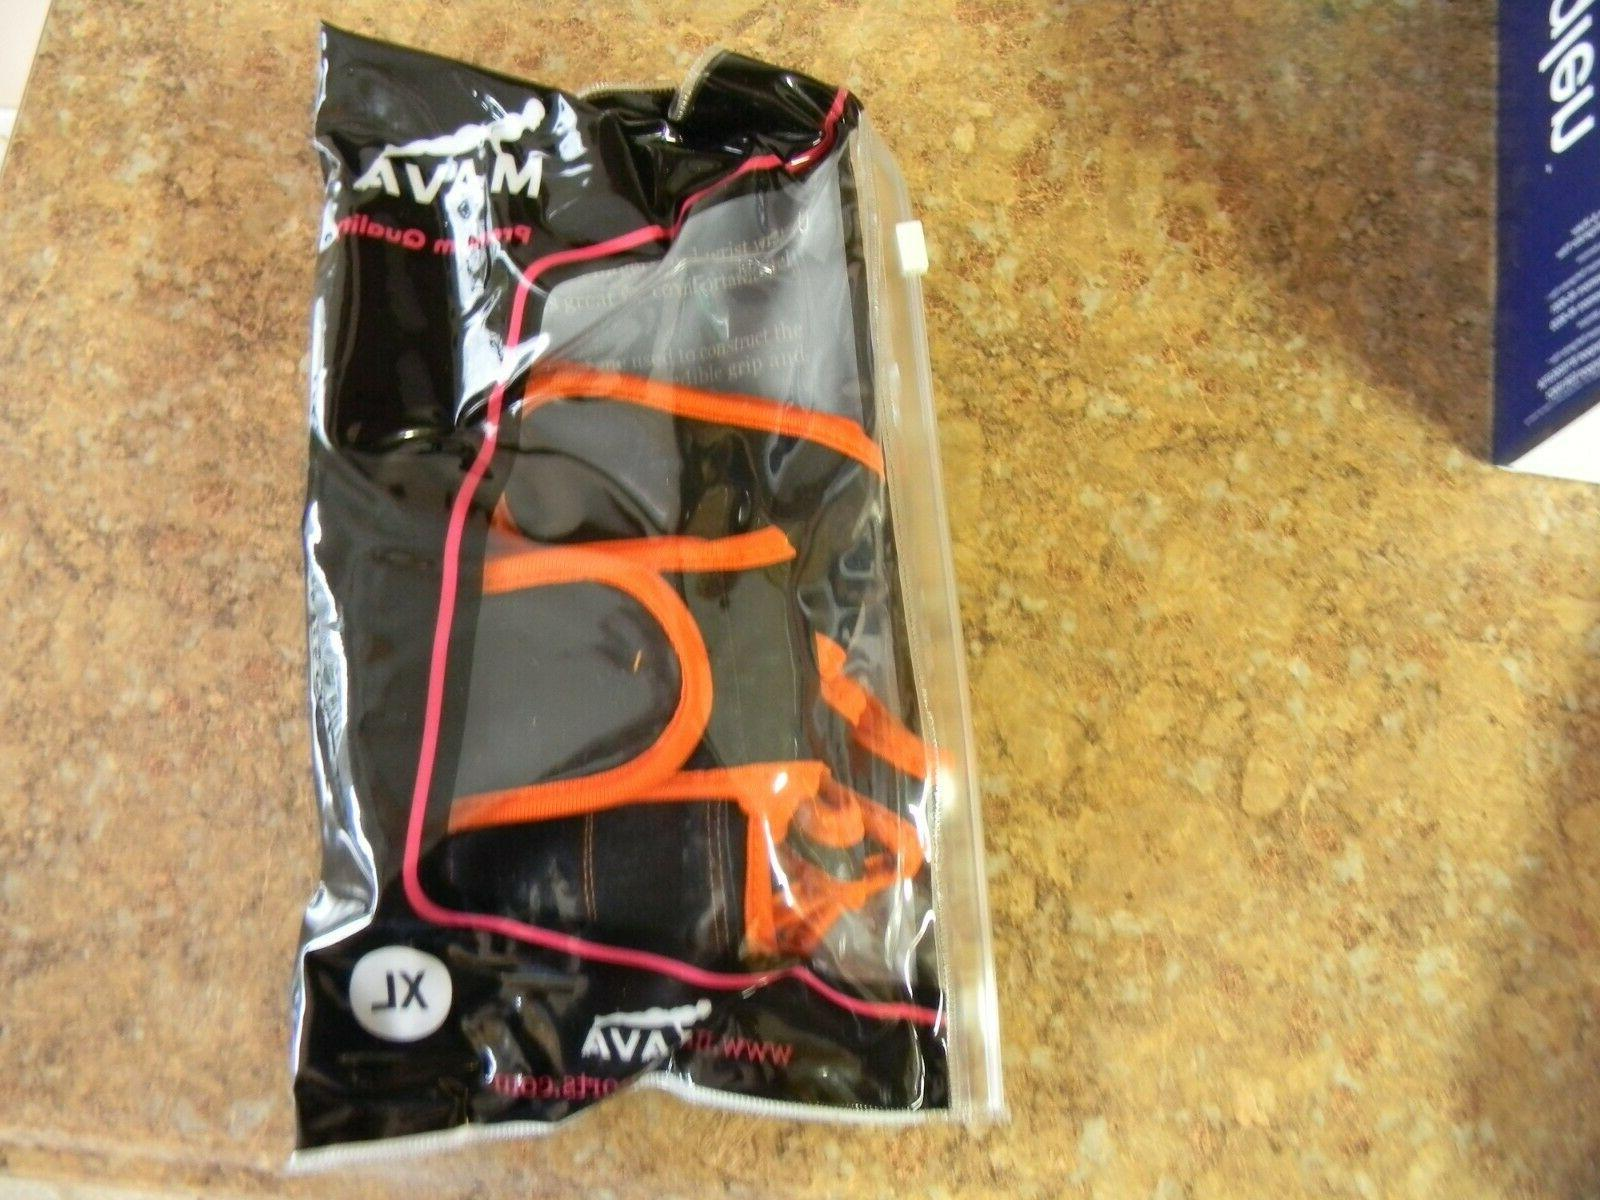 ventilated workout gloves with wrist wraps